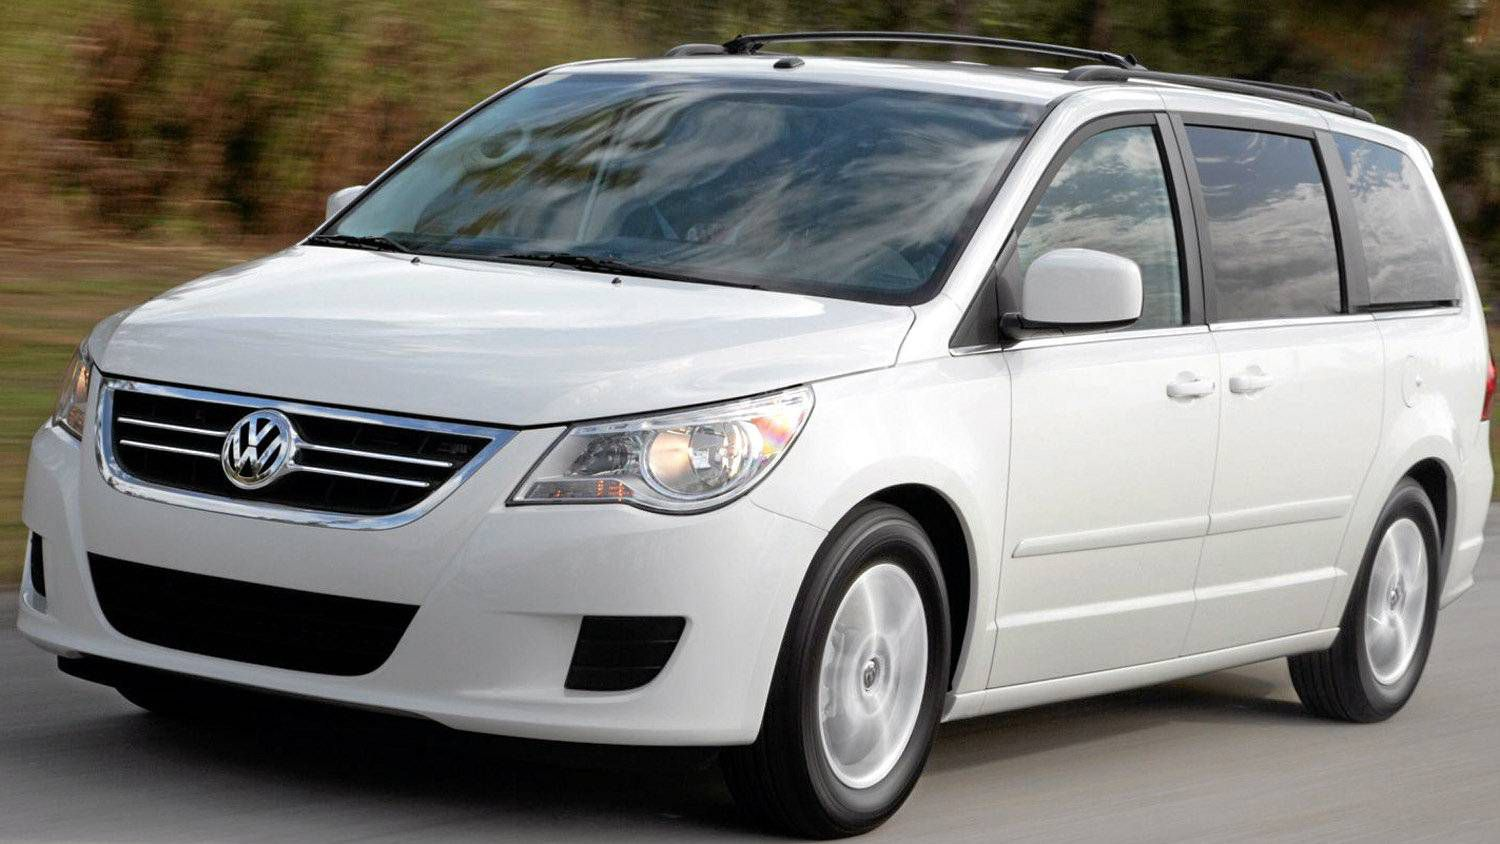 2009 volkswagen routan: a chrysler in vw clothing - the globe and mail